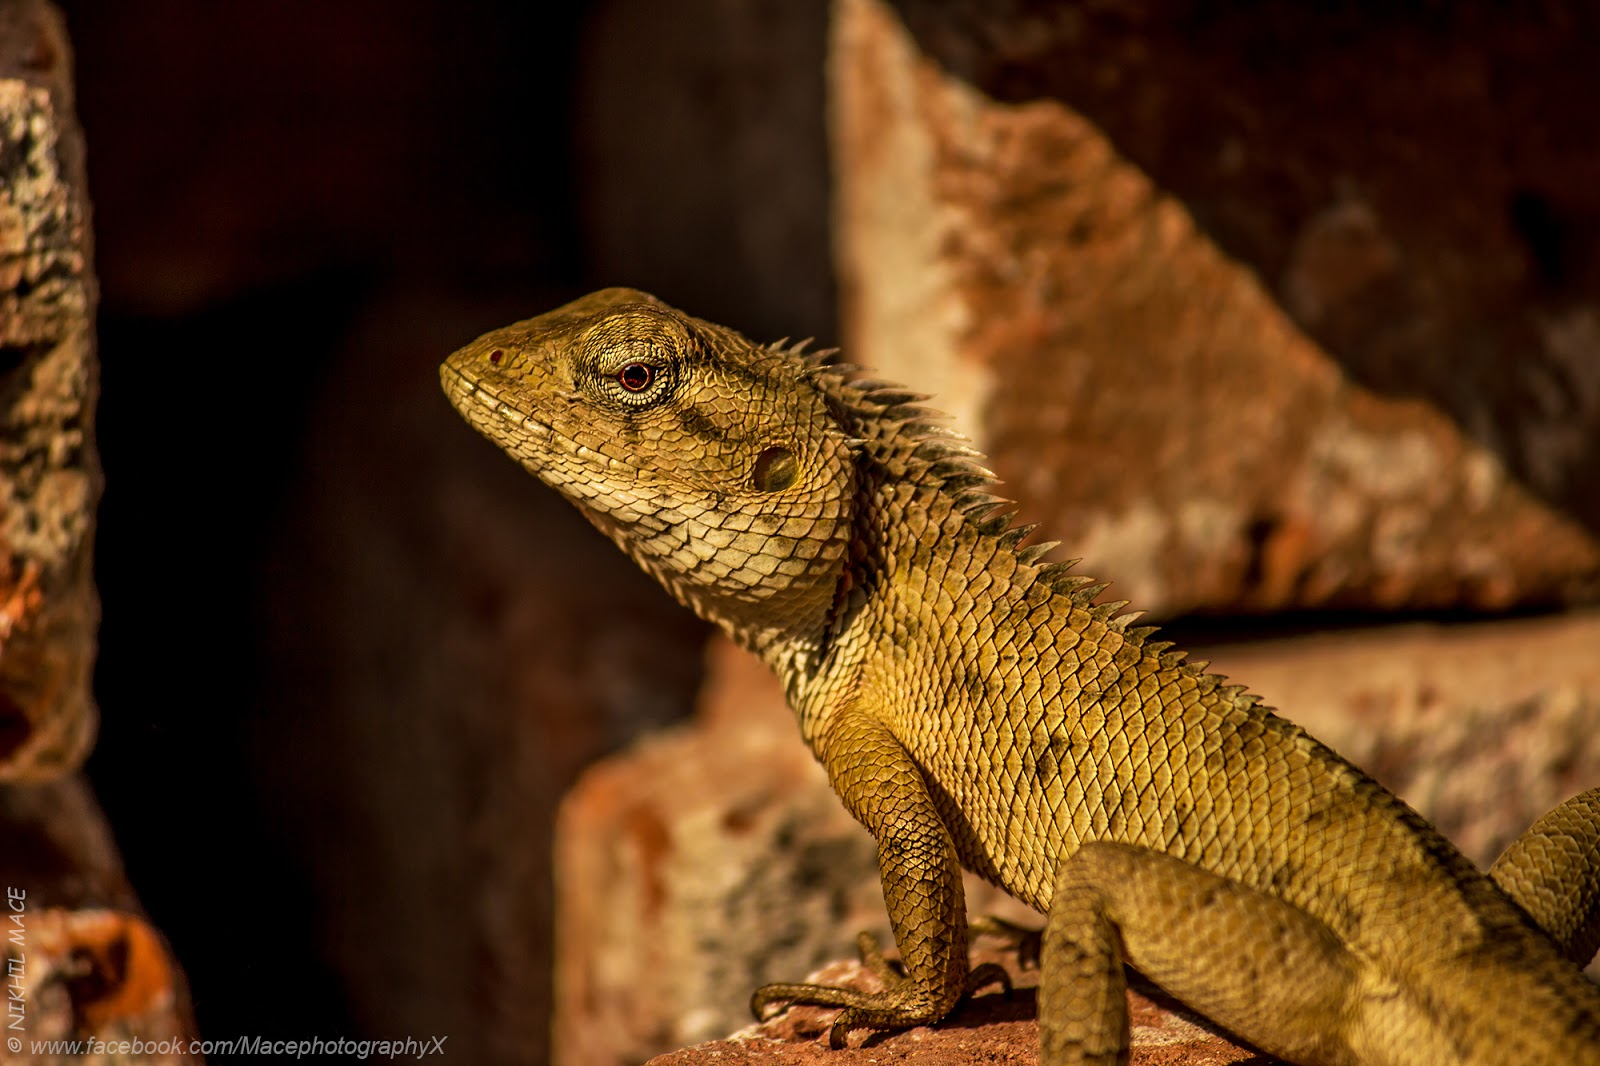 Nikhil Mace: Oriental Garden Lizard Photo by Nikhil (Mace ...